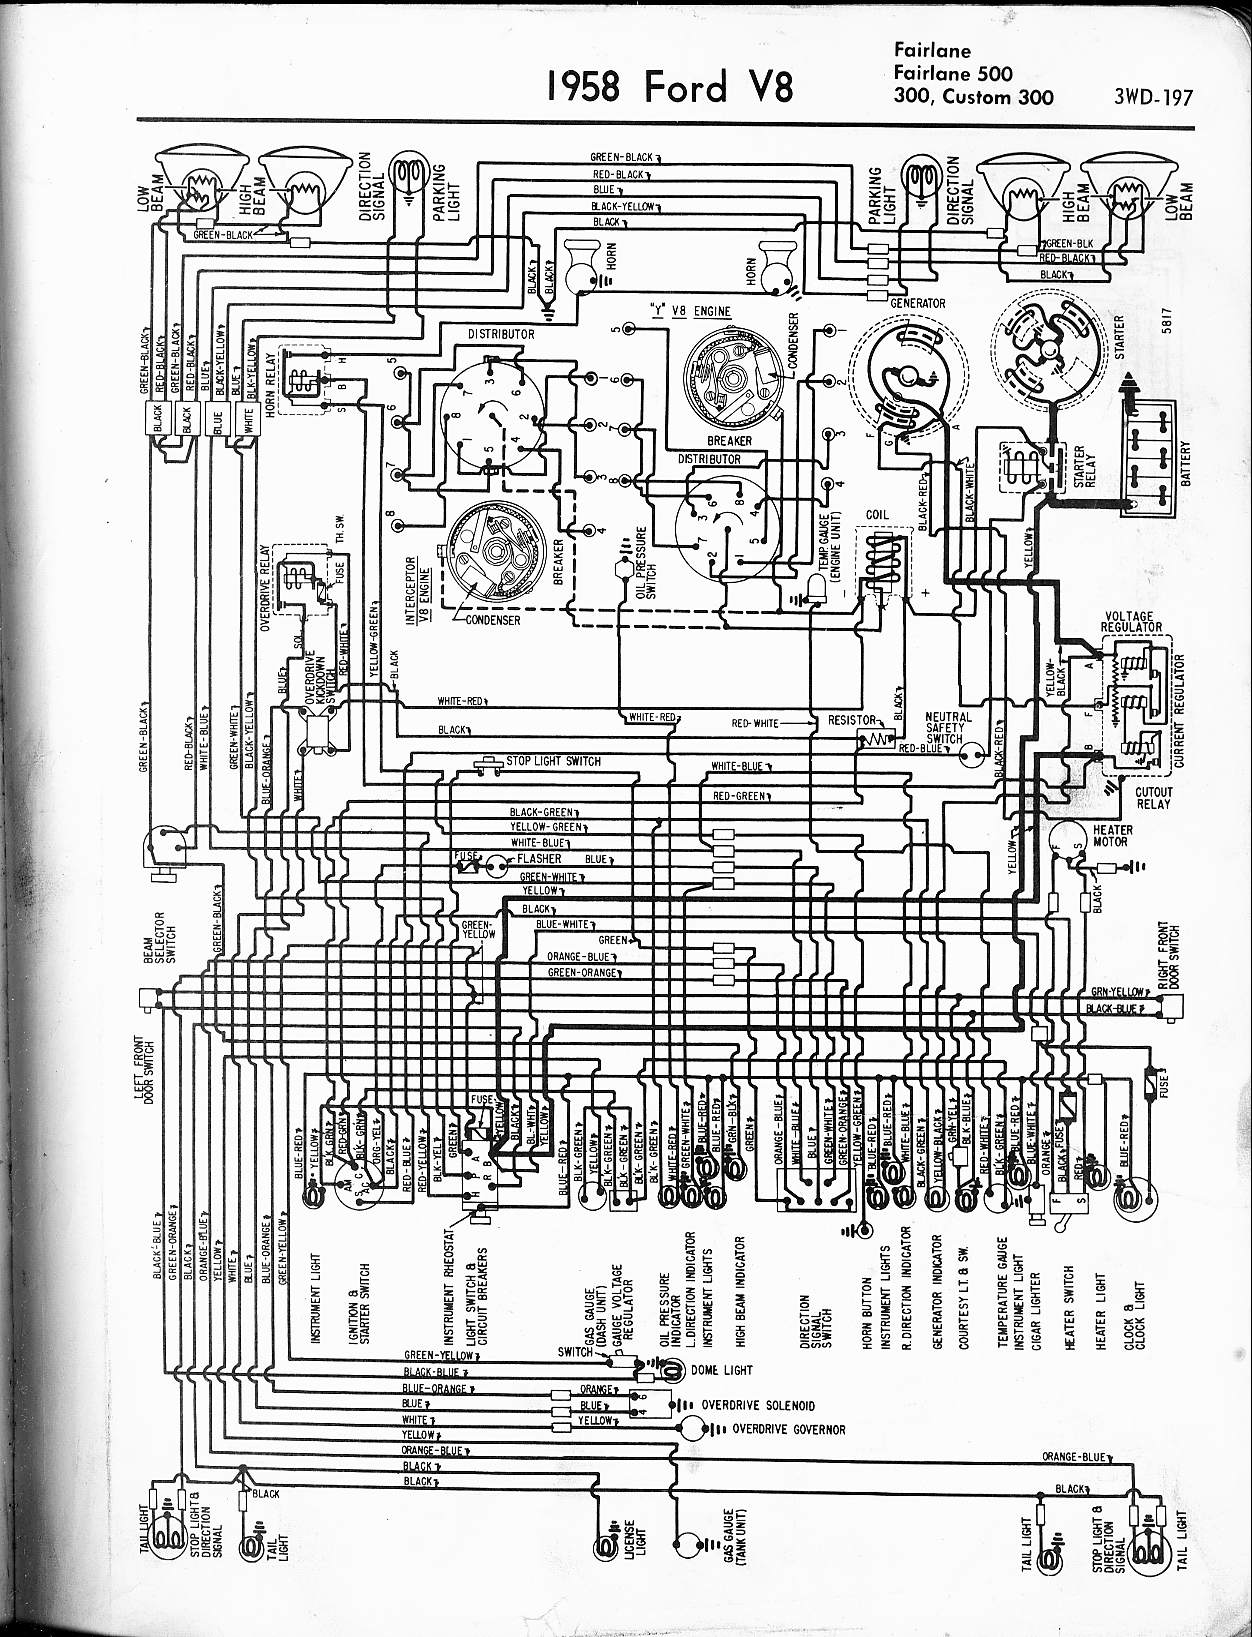 [GJFJ_338]  1957 F100 Wiring Diagram 1999 Mercury Sable Engine Diagram -  maxoncb.anggurhijau.astrea-construction.fr | 1966 Ford F100 Engine Wiring Diagram Free Picture |  | ASTREA CONSTRUCTION